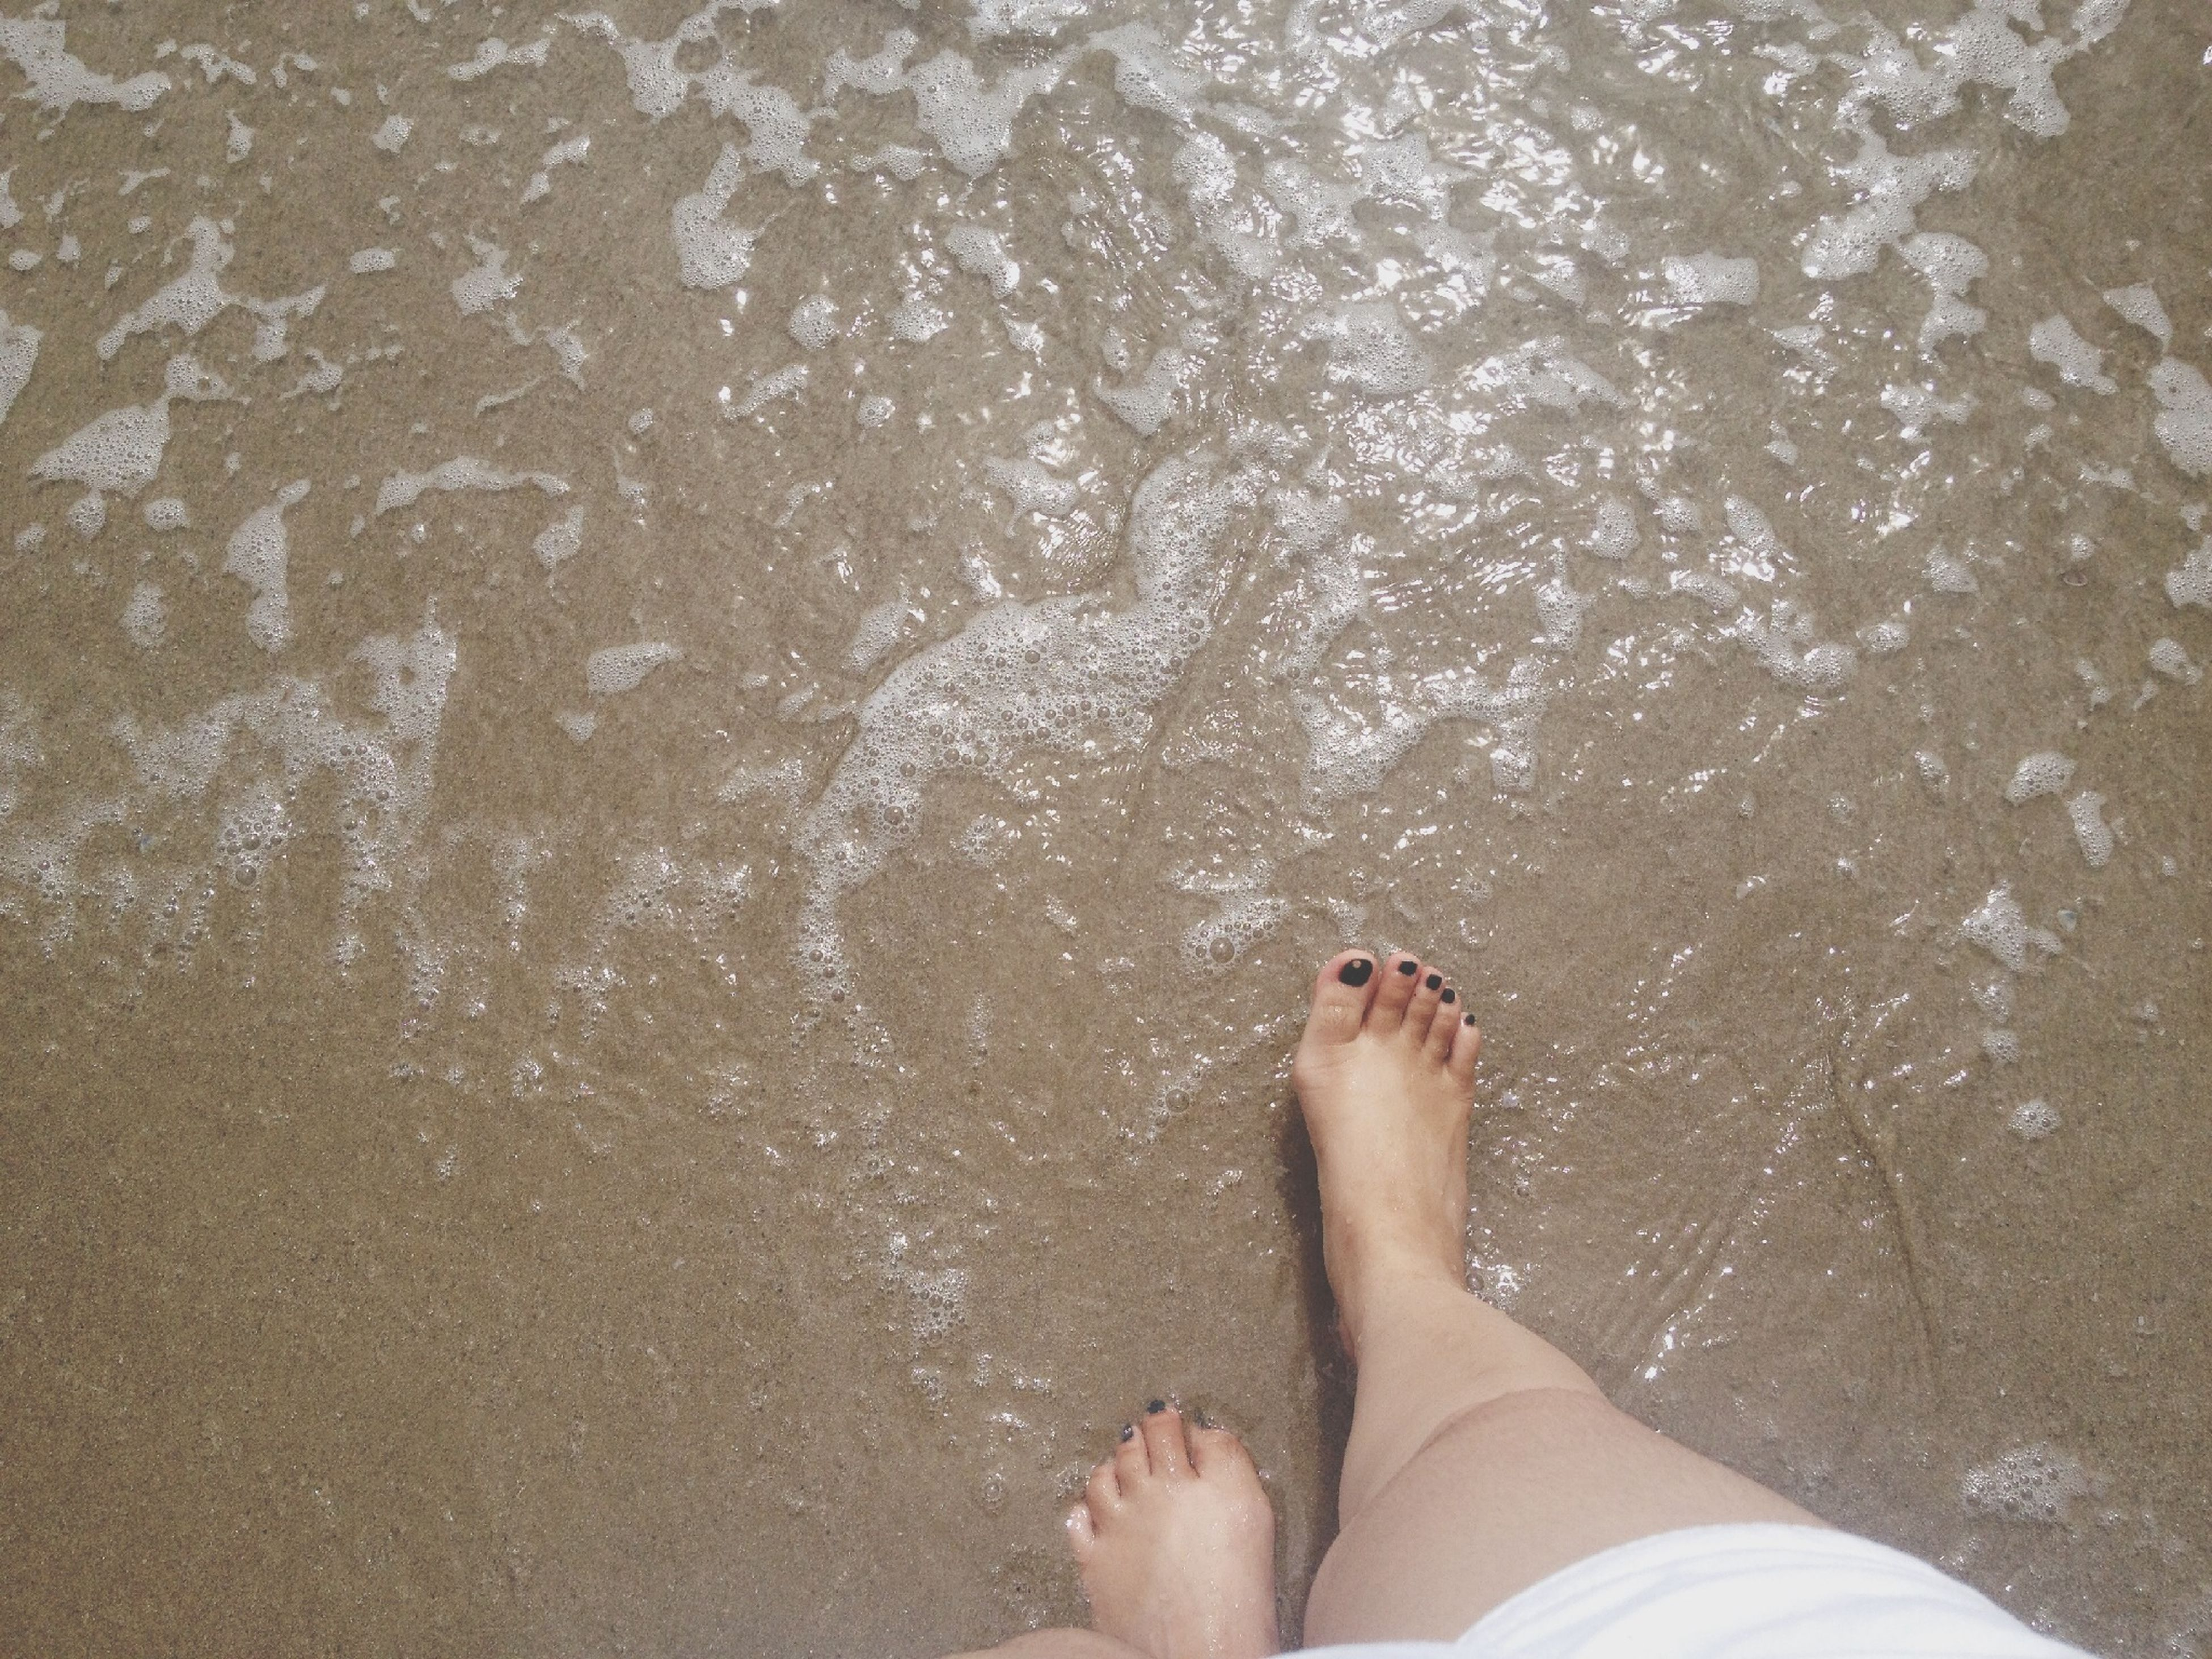 low section, person, water, personal perspective, barefoot, human foot, beach, high angle view, lifestyles, leisure activity, sand, sea, shore, standing, wet, surf